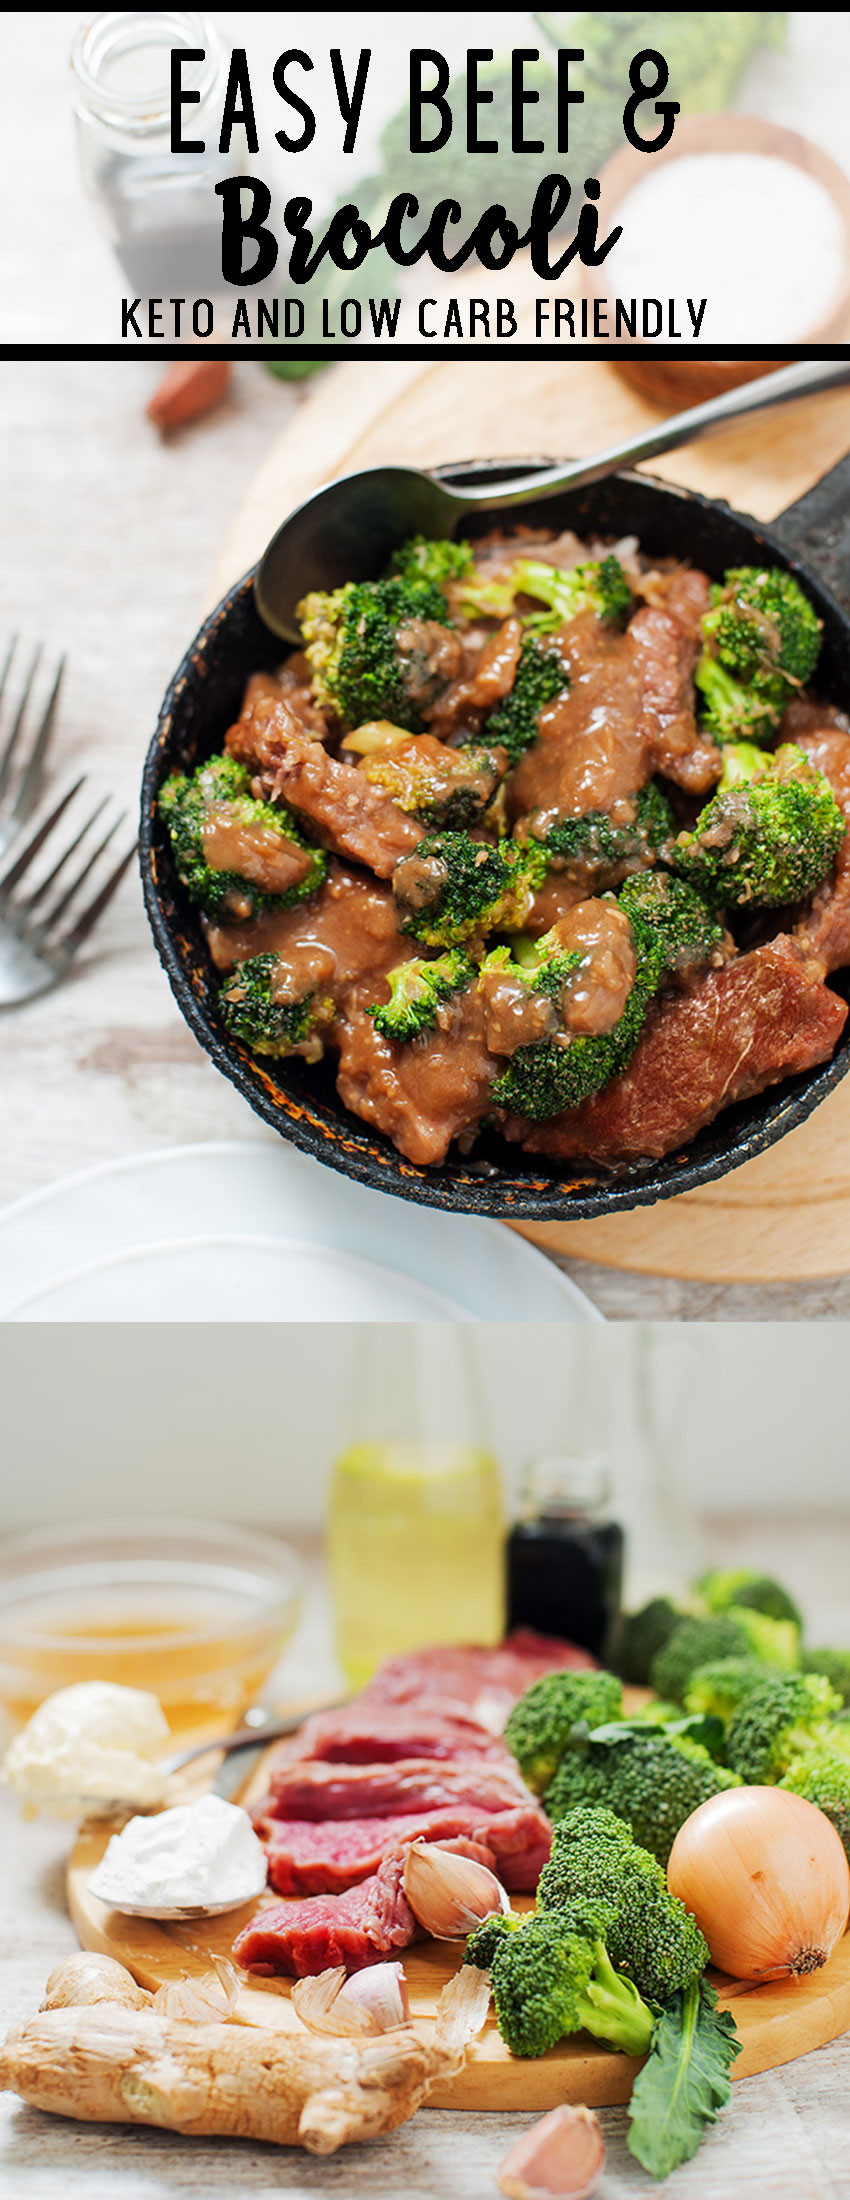 Keto beef and broccoli- a low carb solution for our favorite take out